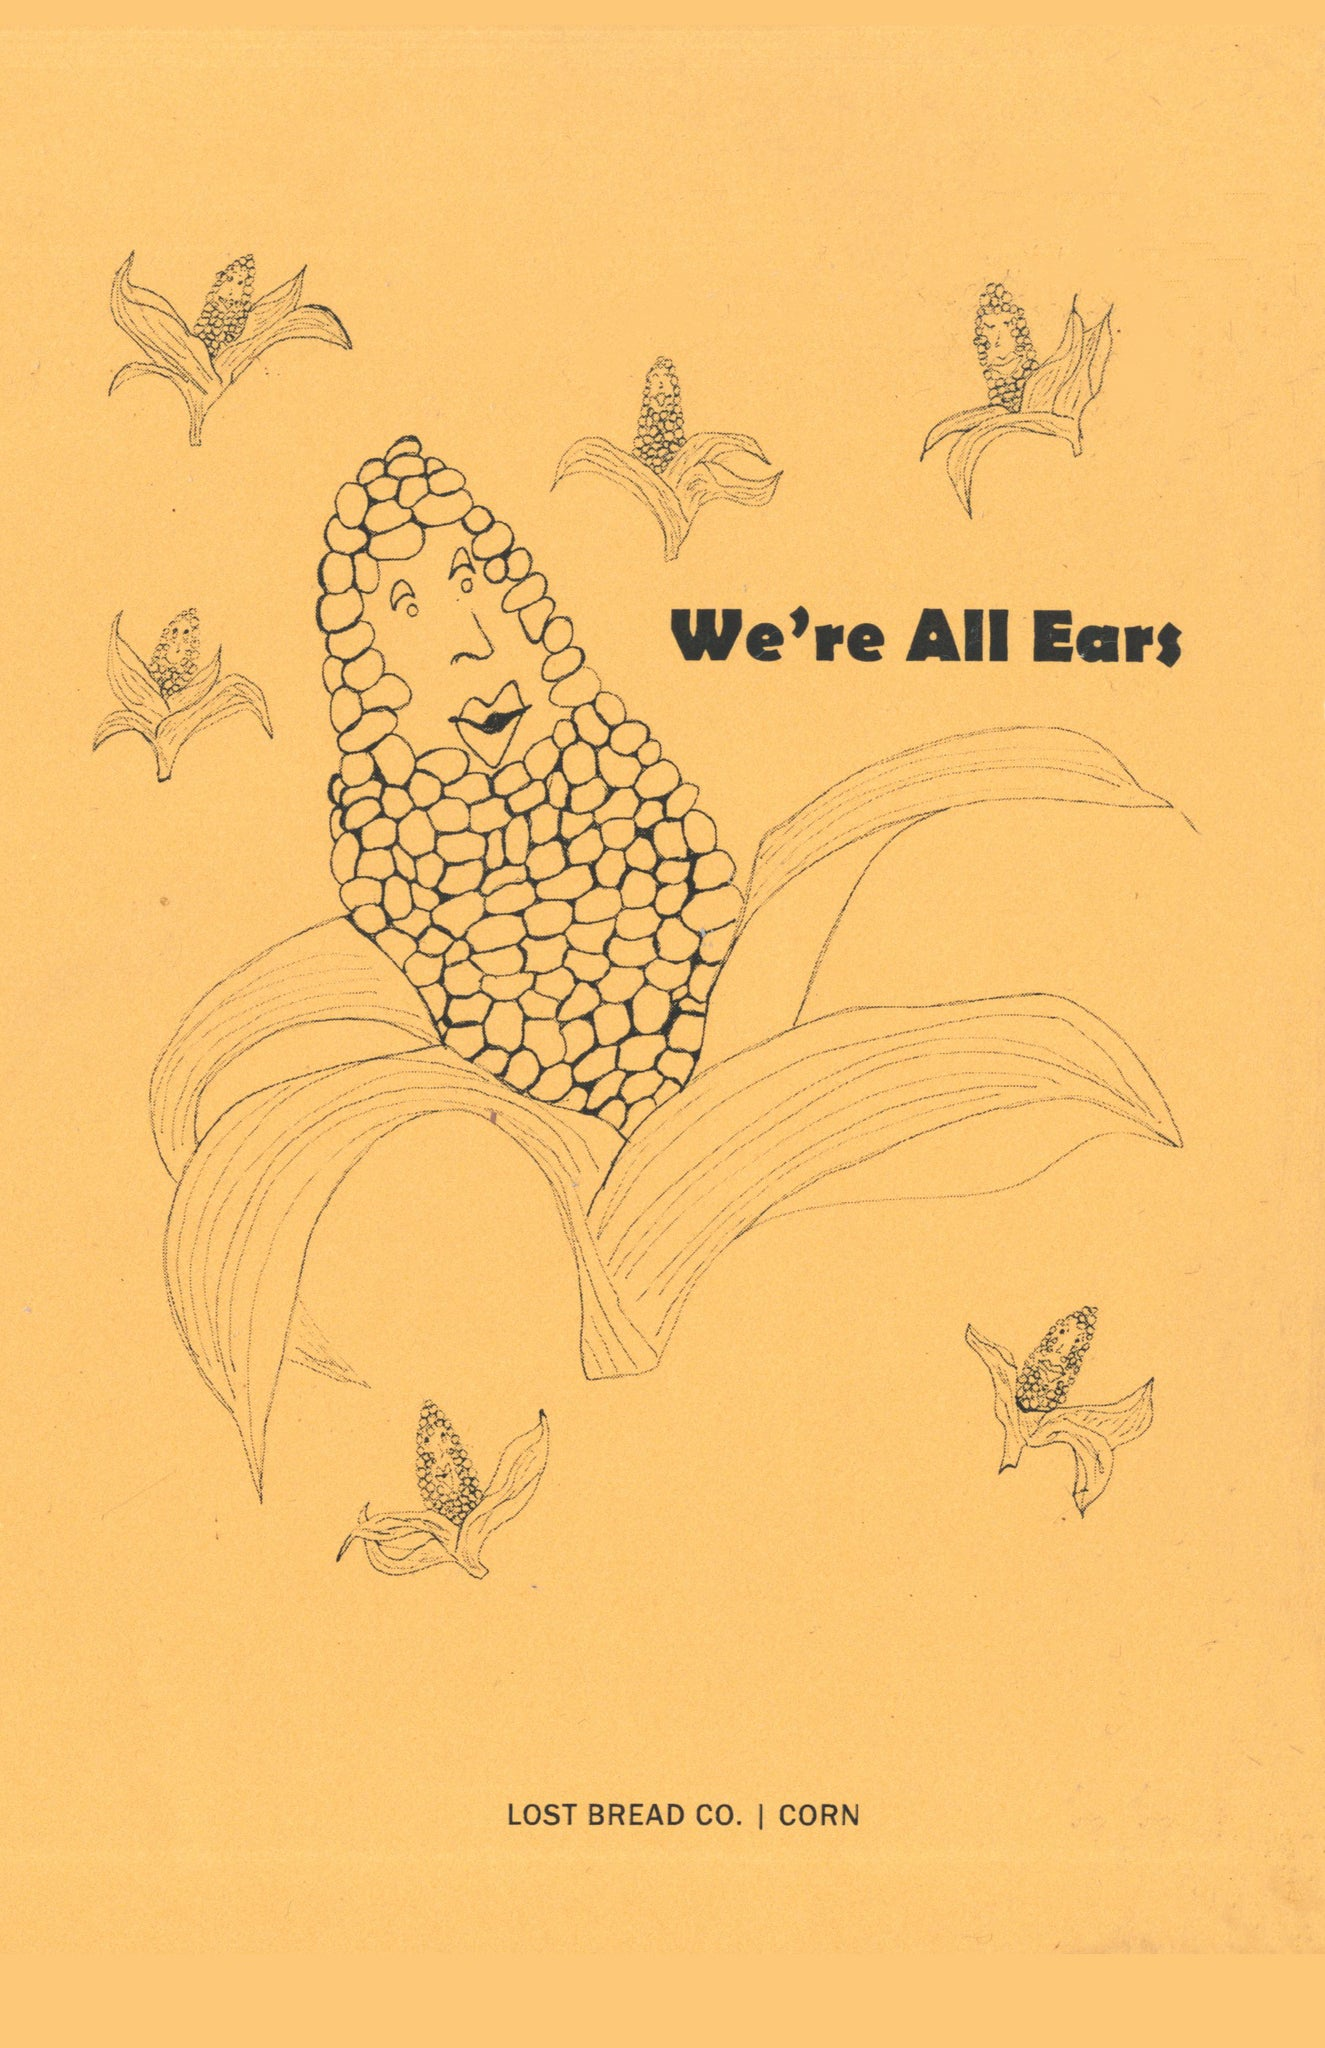 We're All Ears.